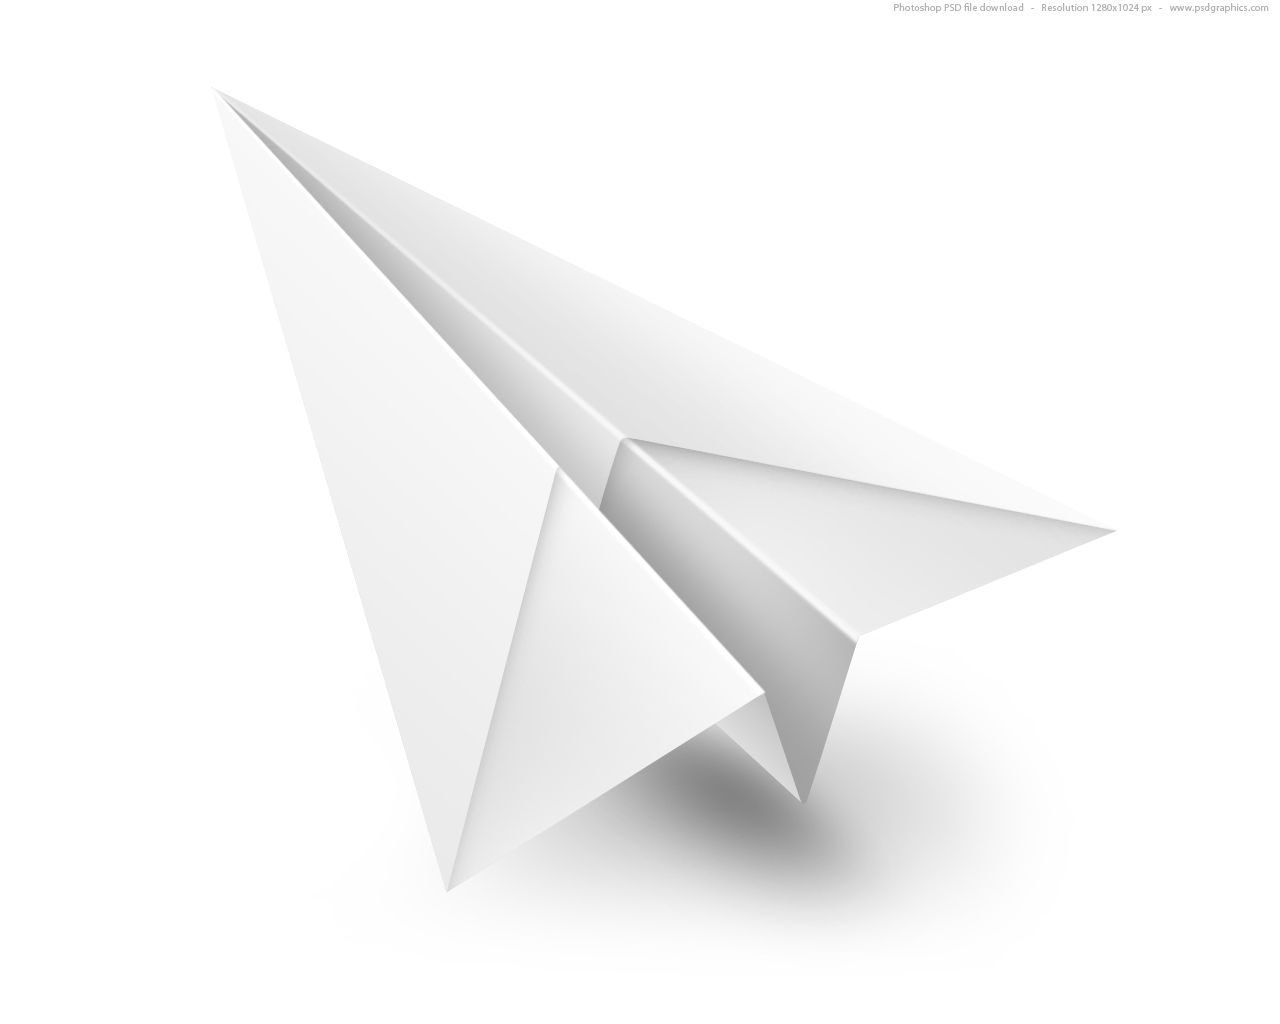 125 best images about Paper Fly on Pinterest | Origami paper ...